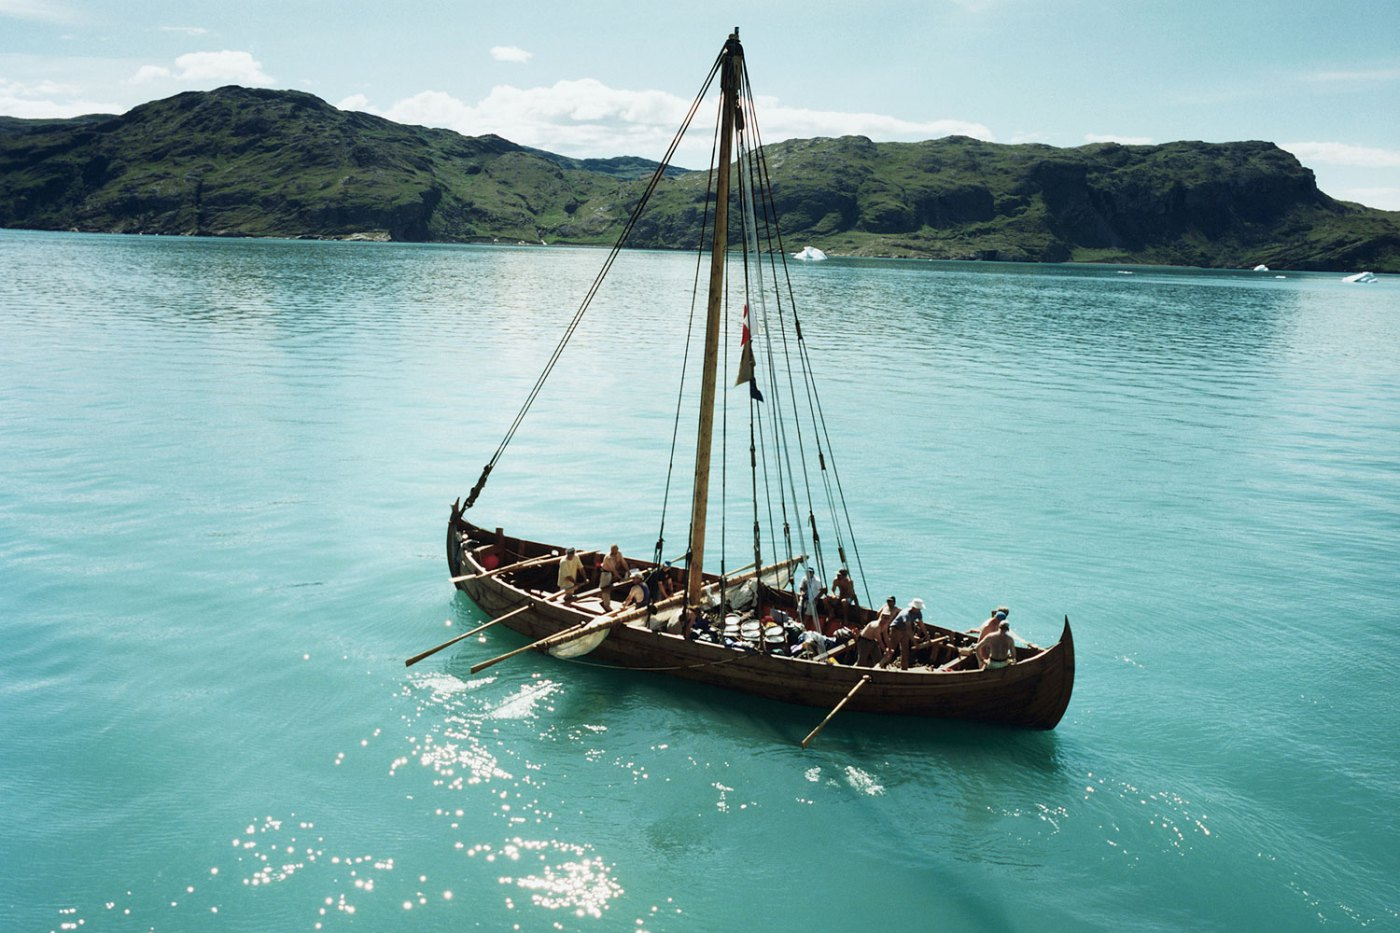 Replica of a Viking ship by Greenland.